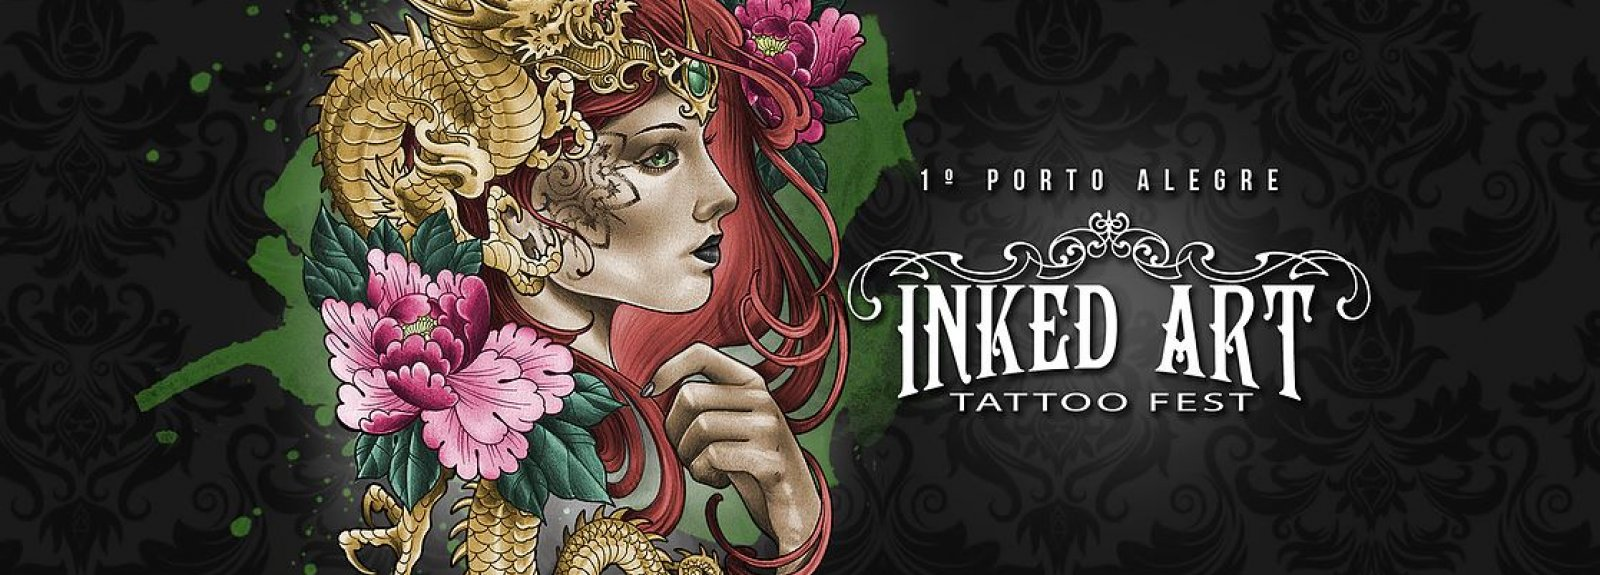 Inked Art Tattoo Fest